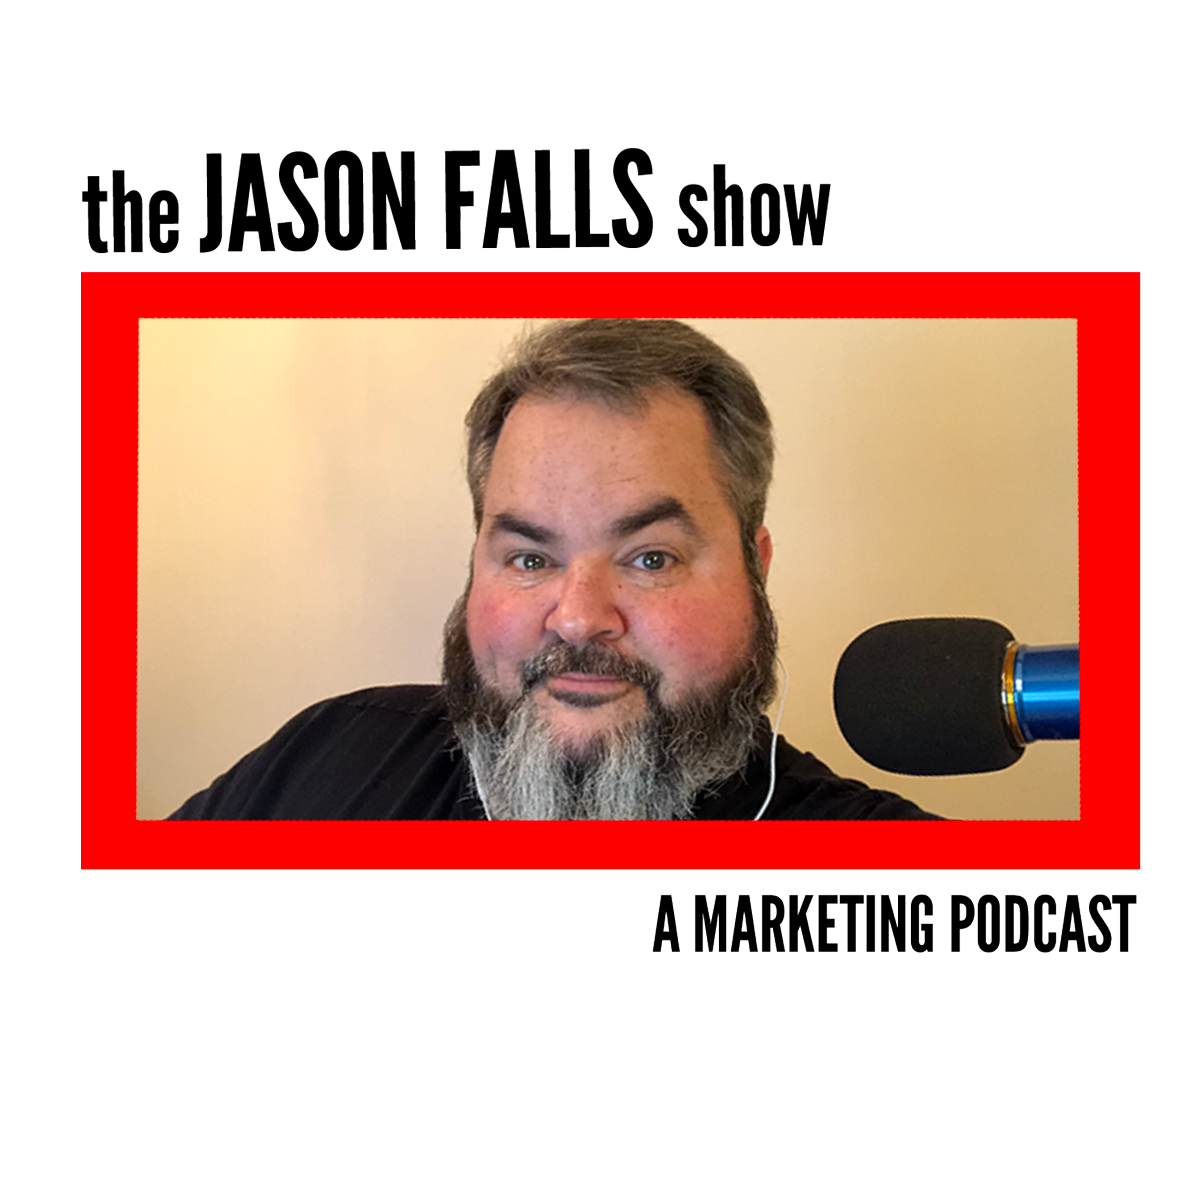 The Jason Falls Show - A Marketing Podcast (soon to be Digging Deeper) show art